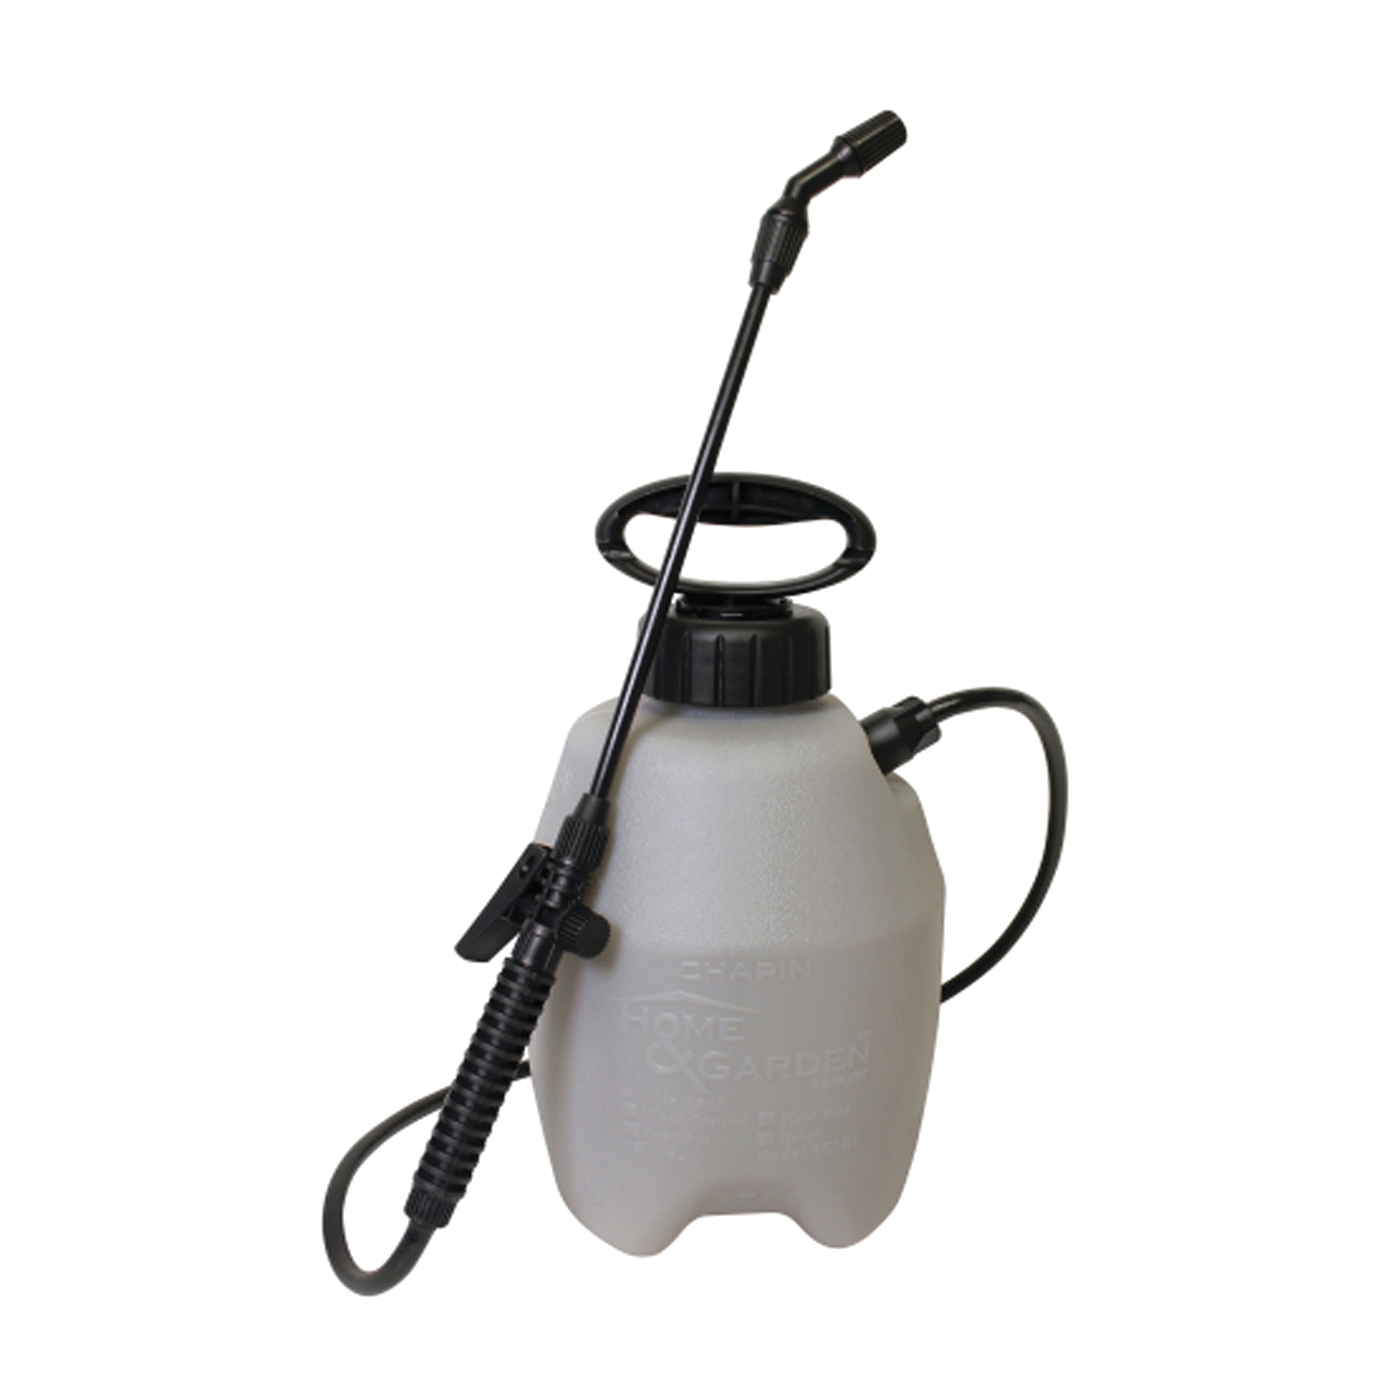 Picture of CHAPIN 16100 Home and Garden Sprayer, 1 gal Tank, Poly Tank, 34 in L Hose